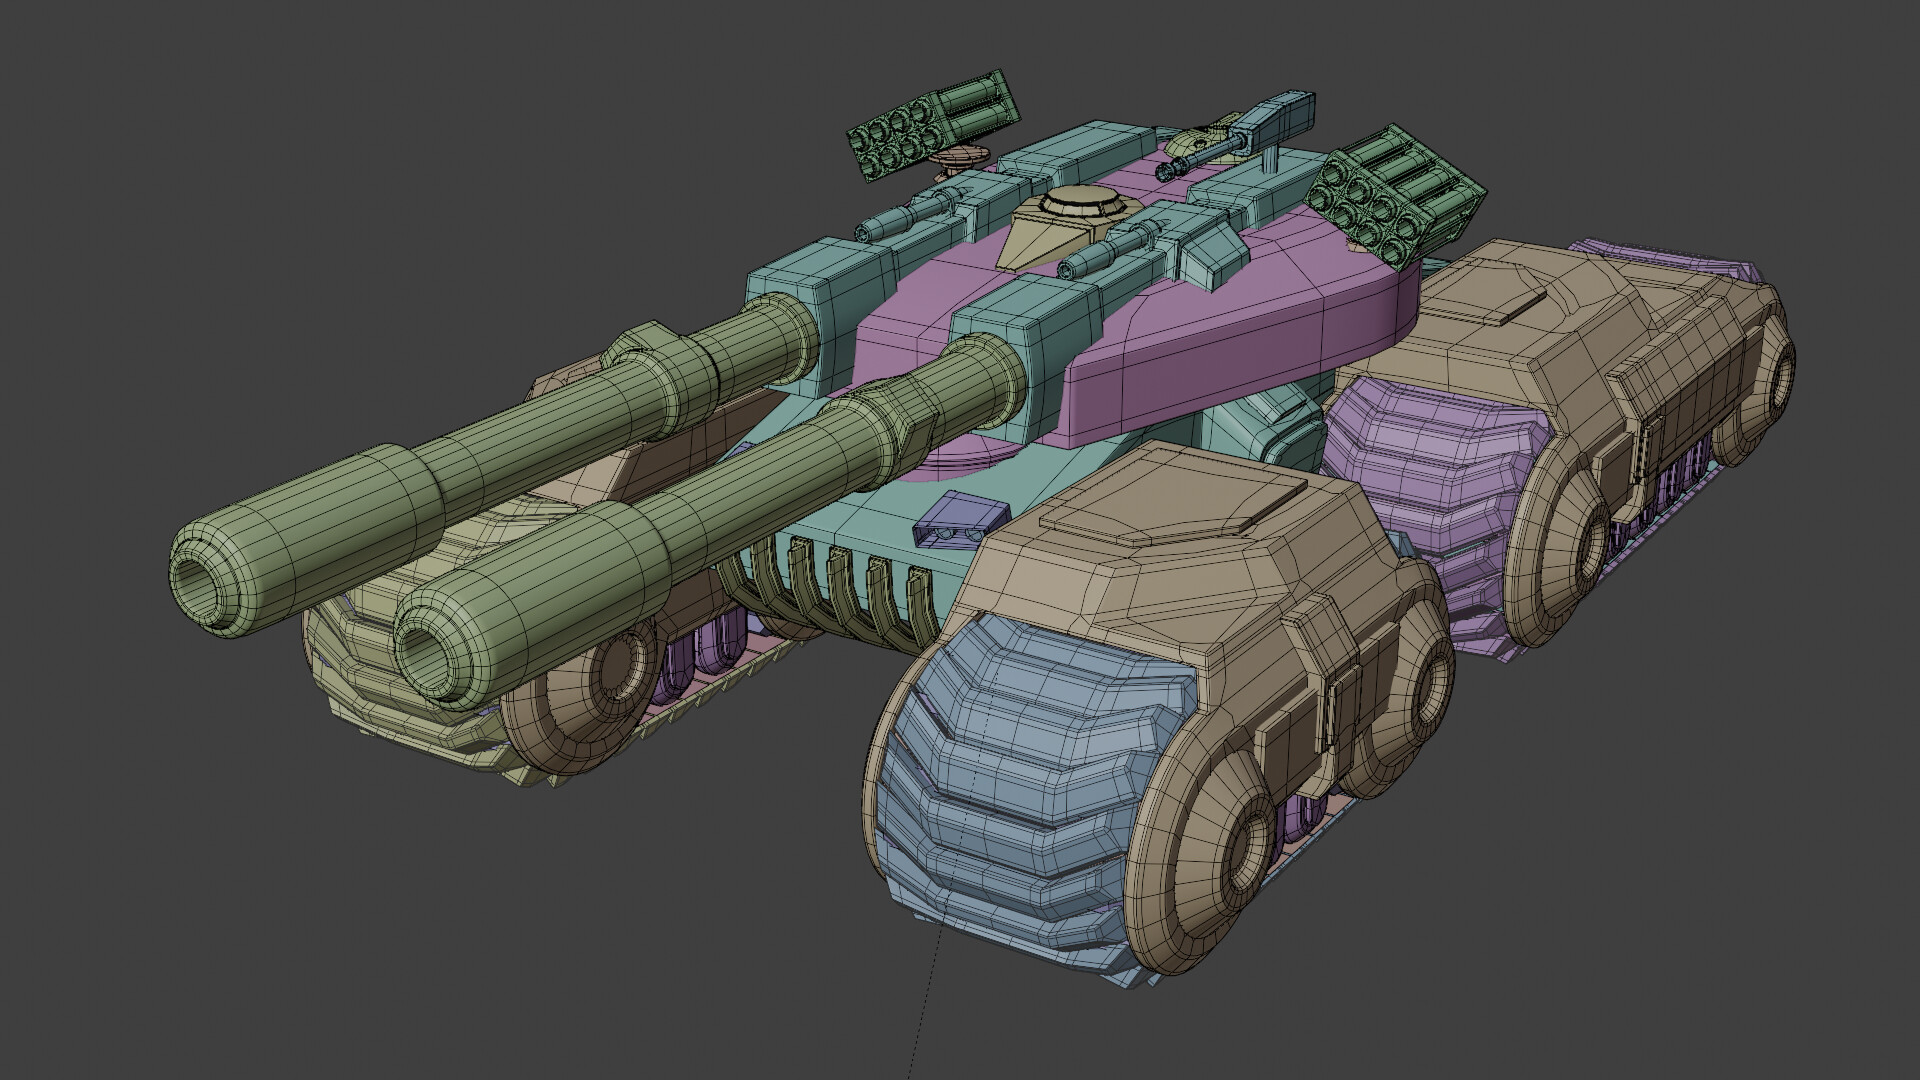 Much of the tank is made of individual parts with intersecting geometry.